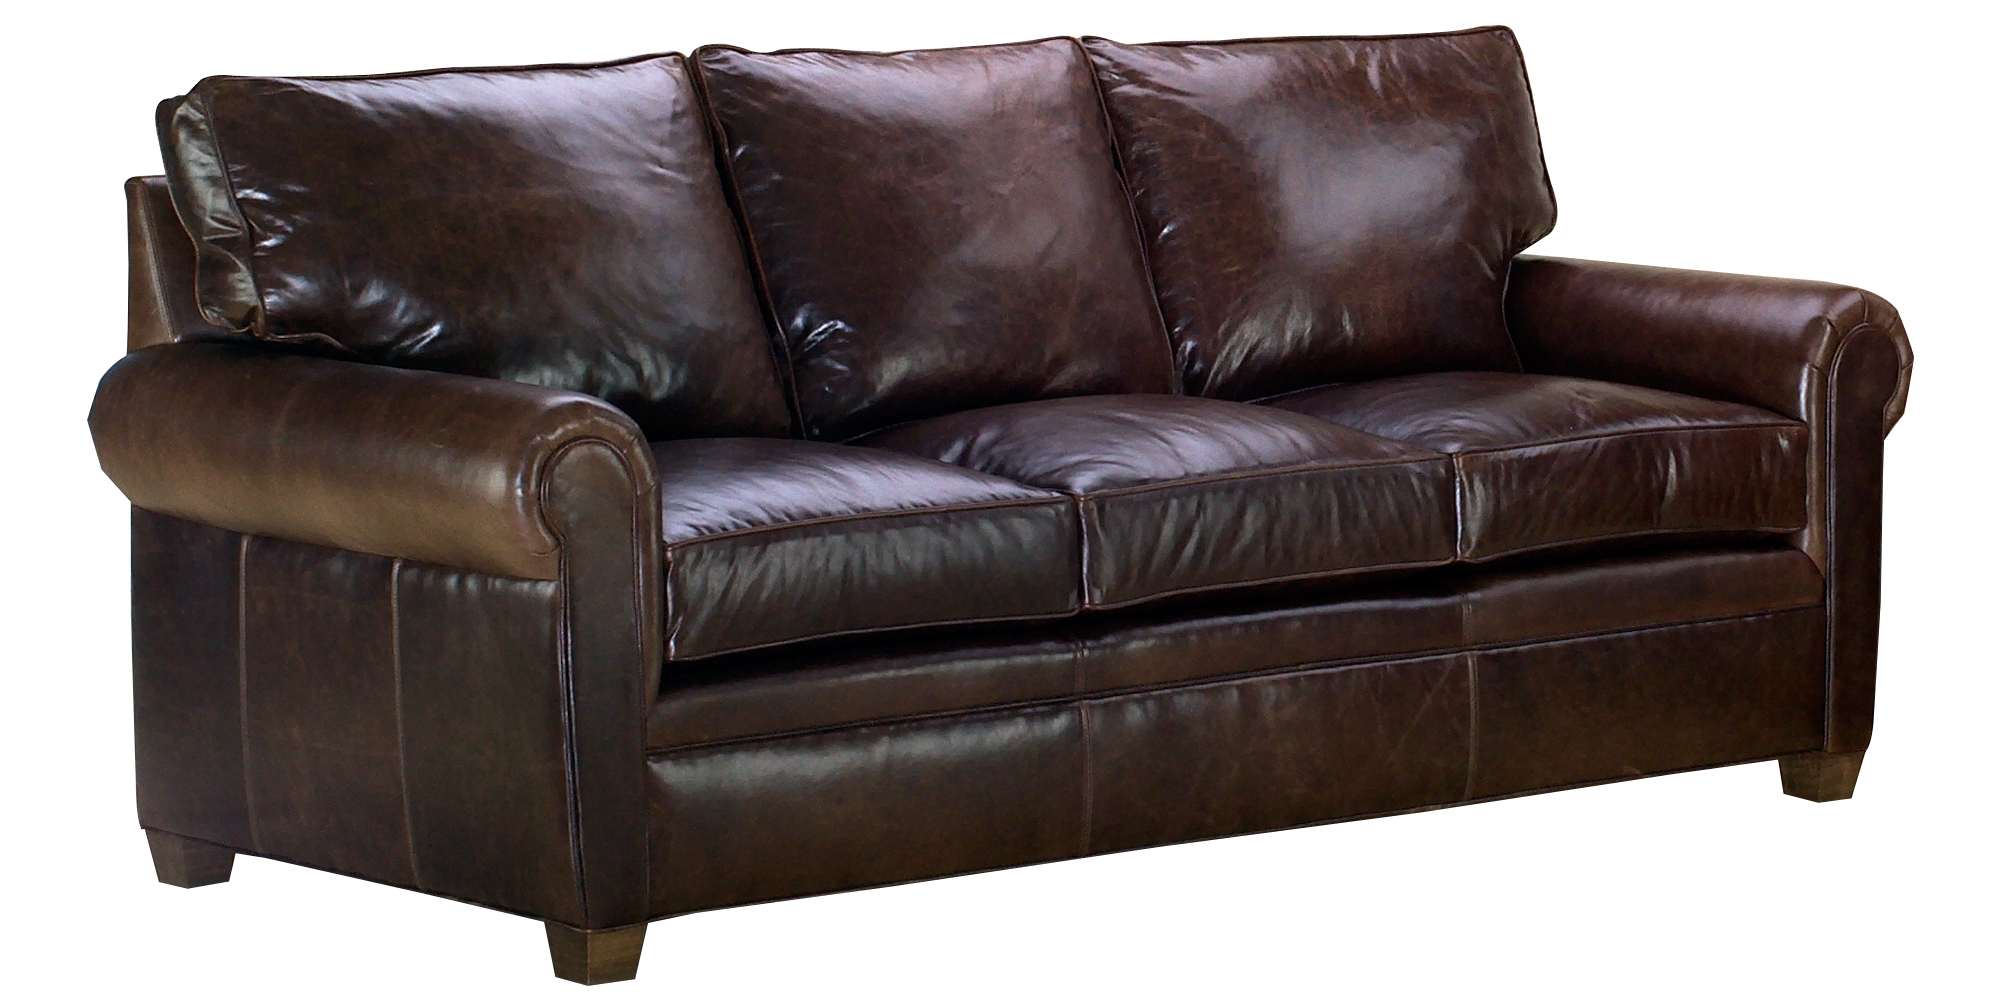 Classic leather sofa set with traditional rolled arms for Furniture furniture